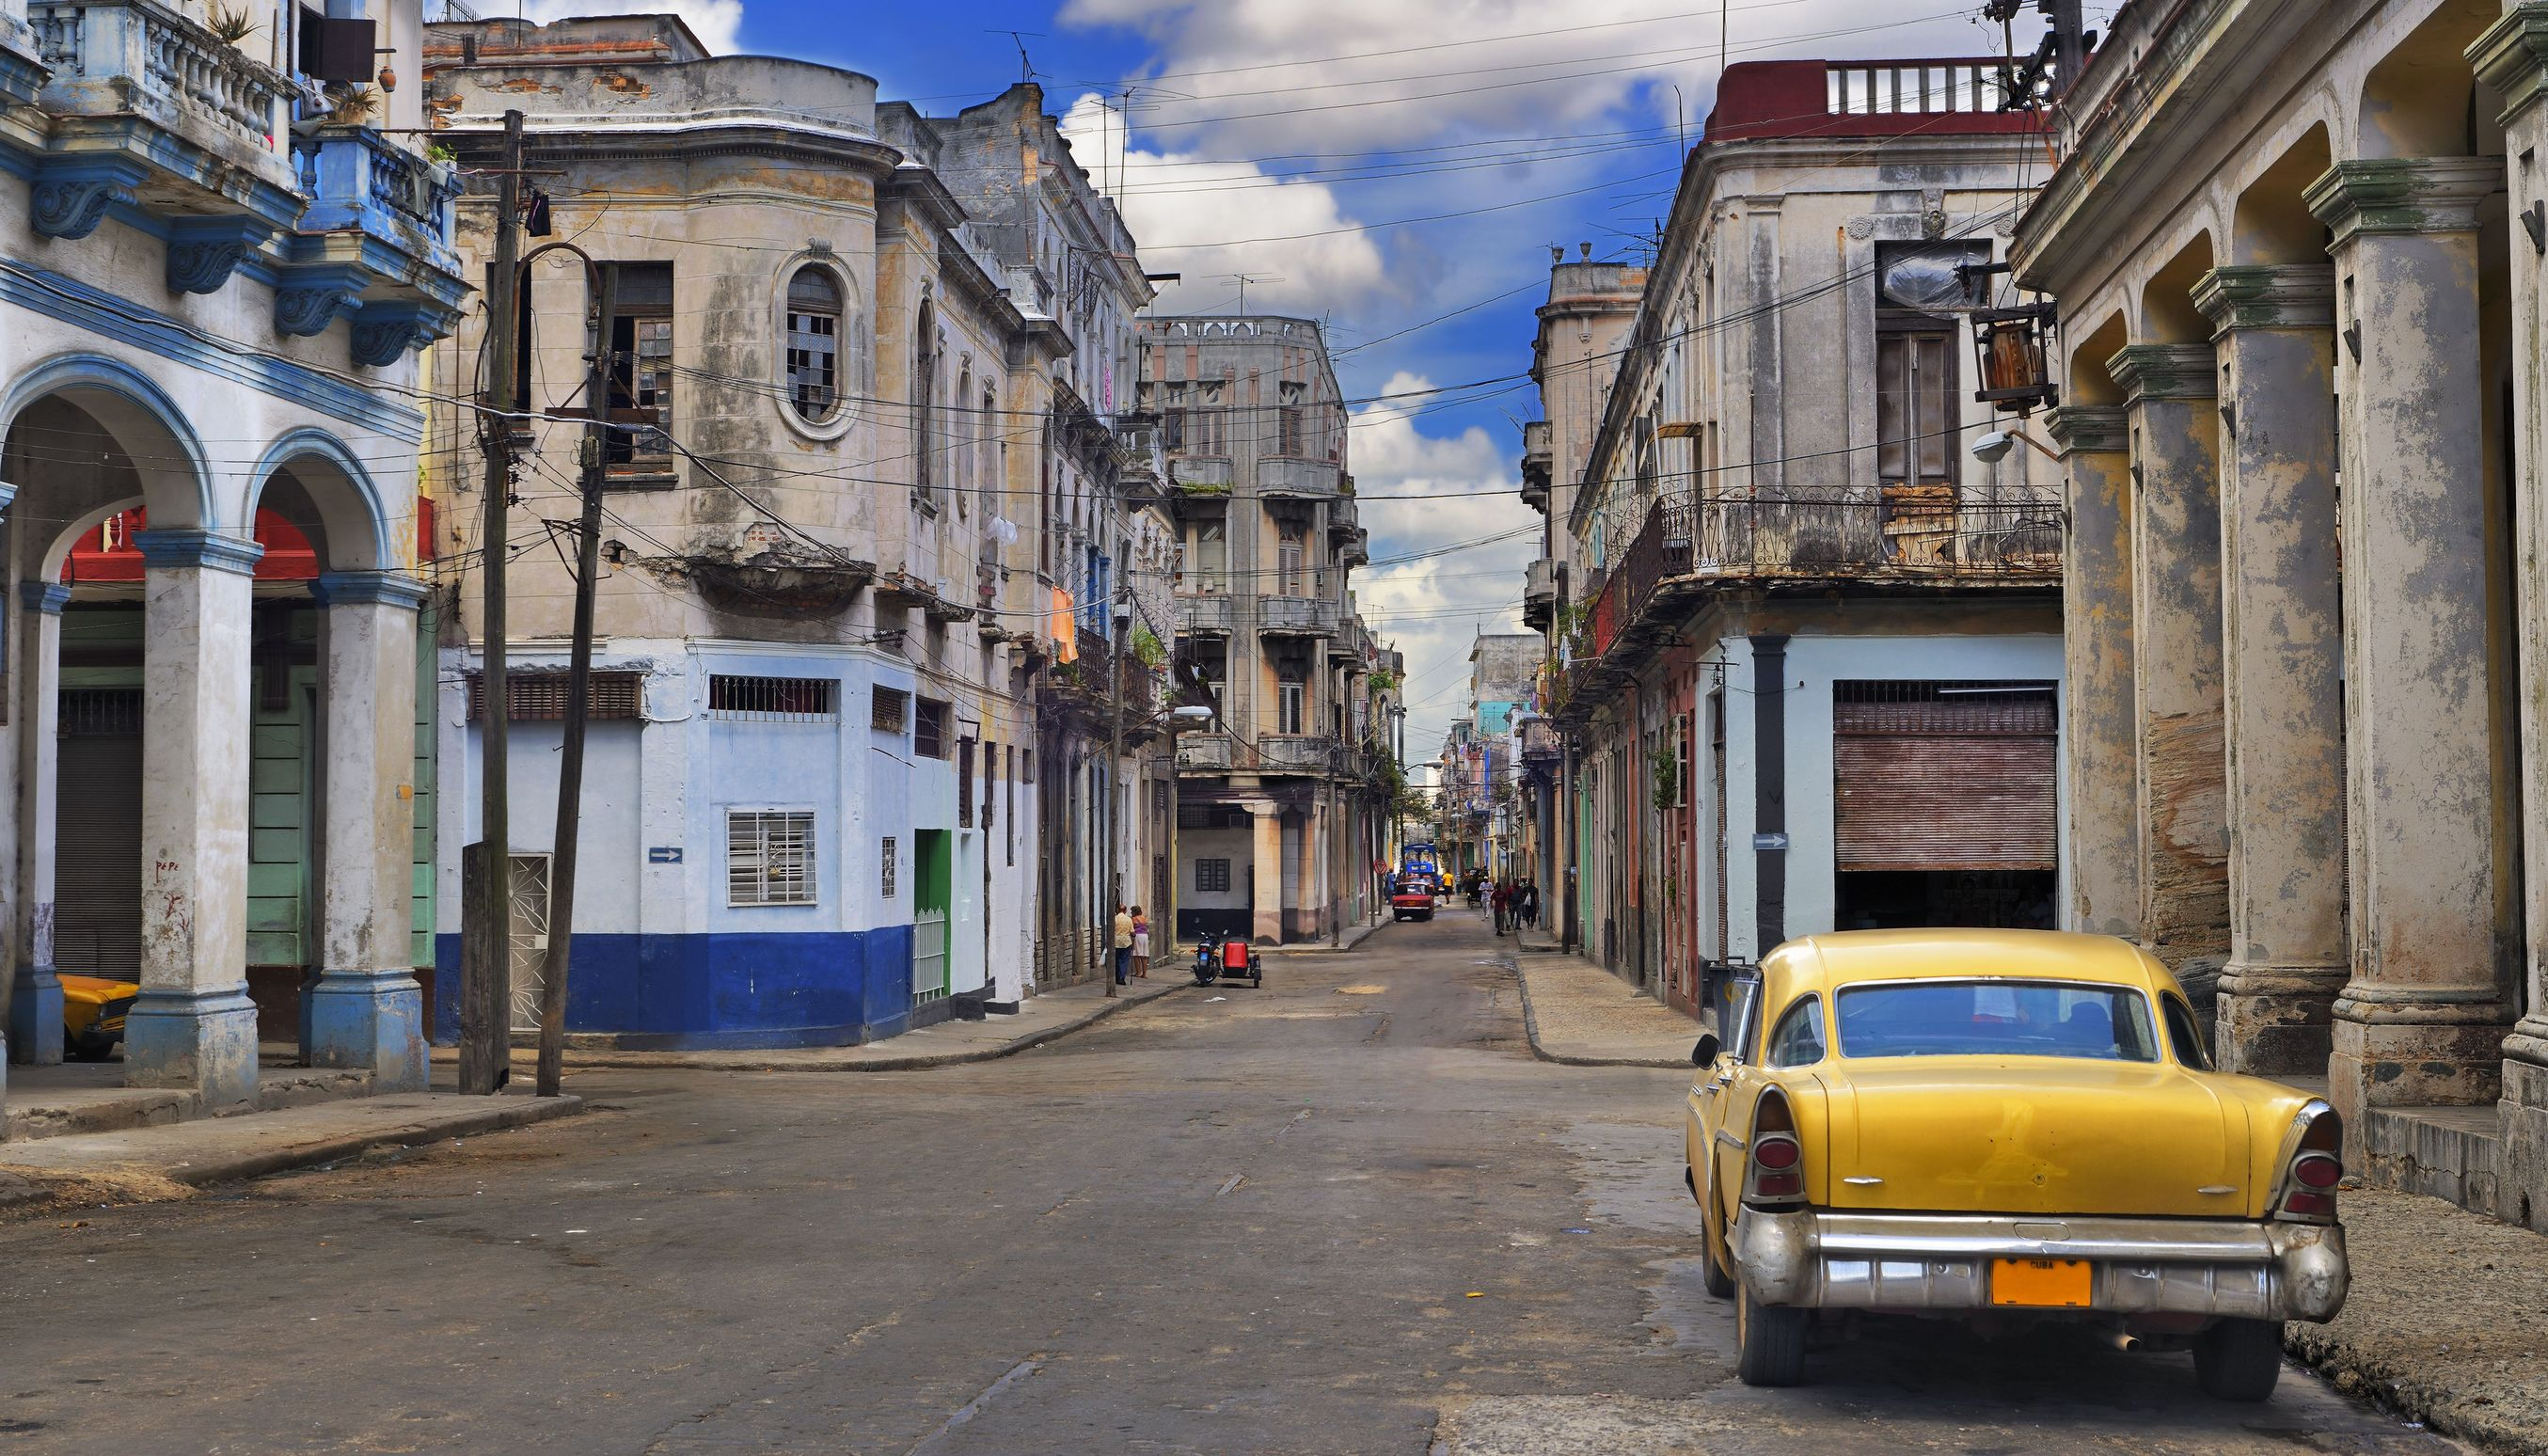 SPAN-499, The Cuban World: Discourse and Identity